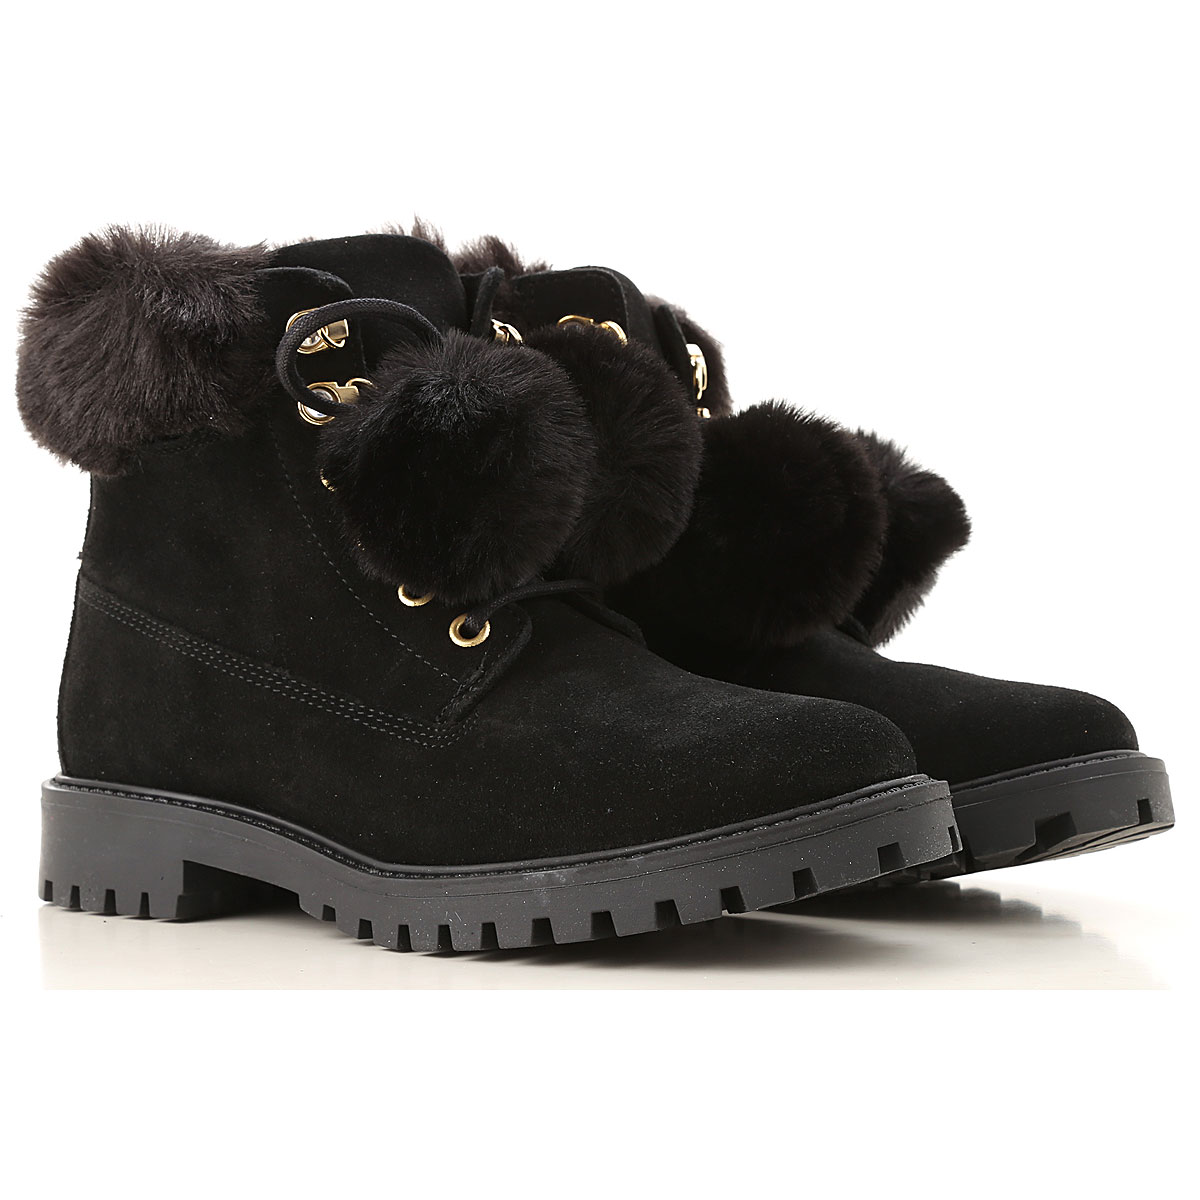 Image of Guess Boots for Women, Booties, Black, Suede leather, 2017, 10 6 7 8 9